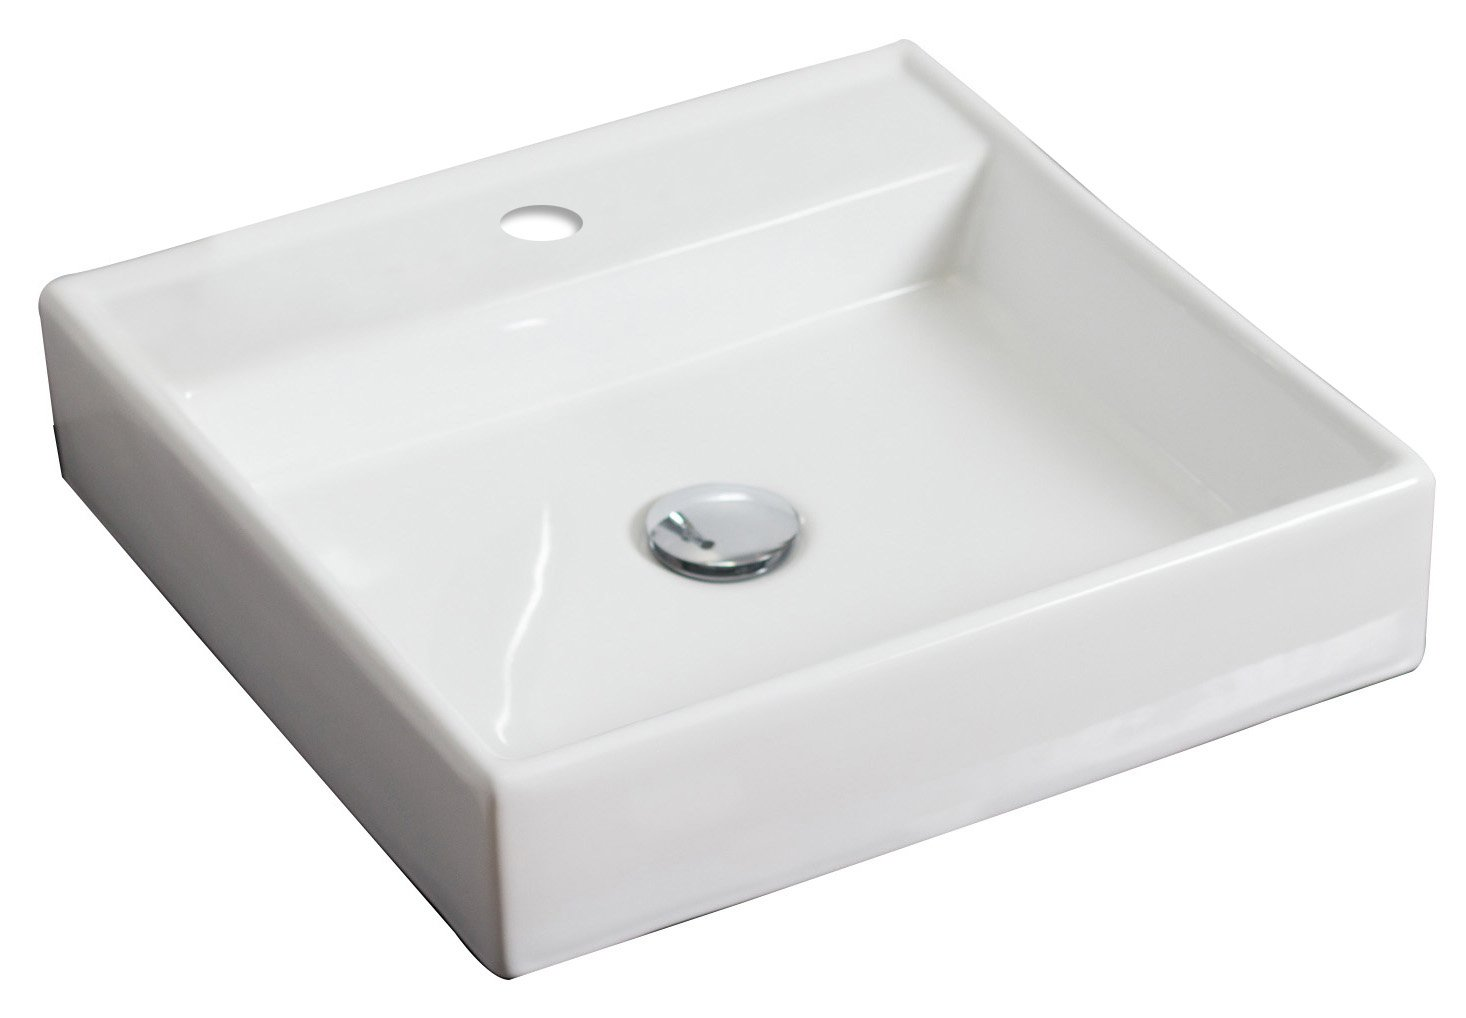 17.5-in. W x 17.5-in. D Above Counter Square Vessel In White Color For Single Hole Faucet IMG Imports Inc. AI-3-1306